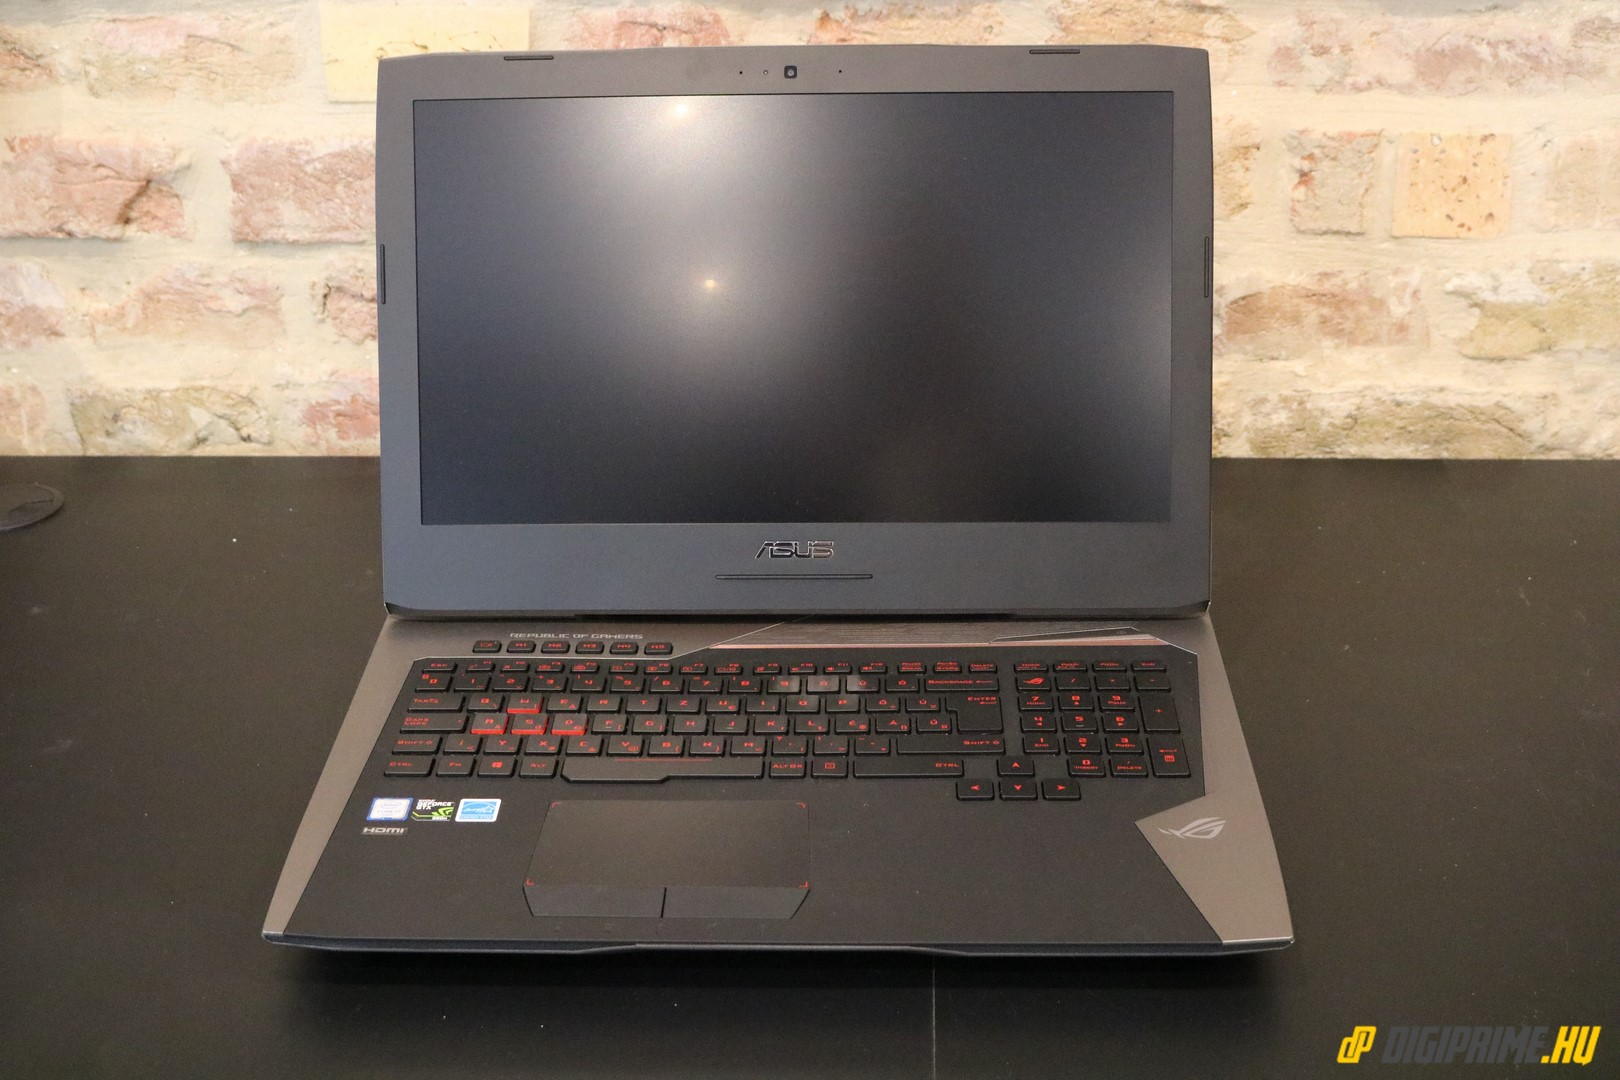 asus rog g752vy gc144t 02 digiprime.hu